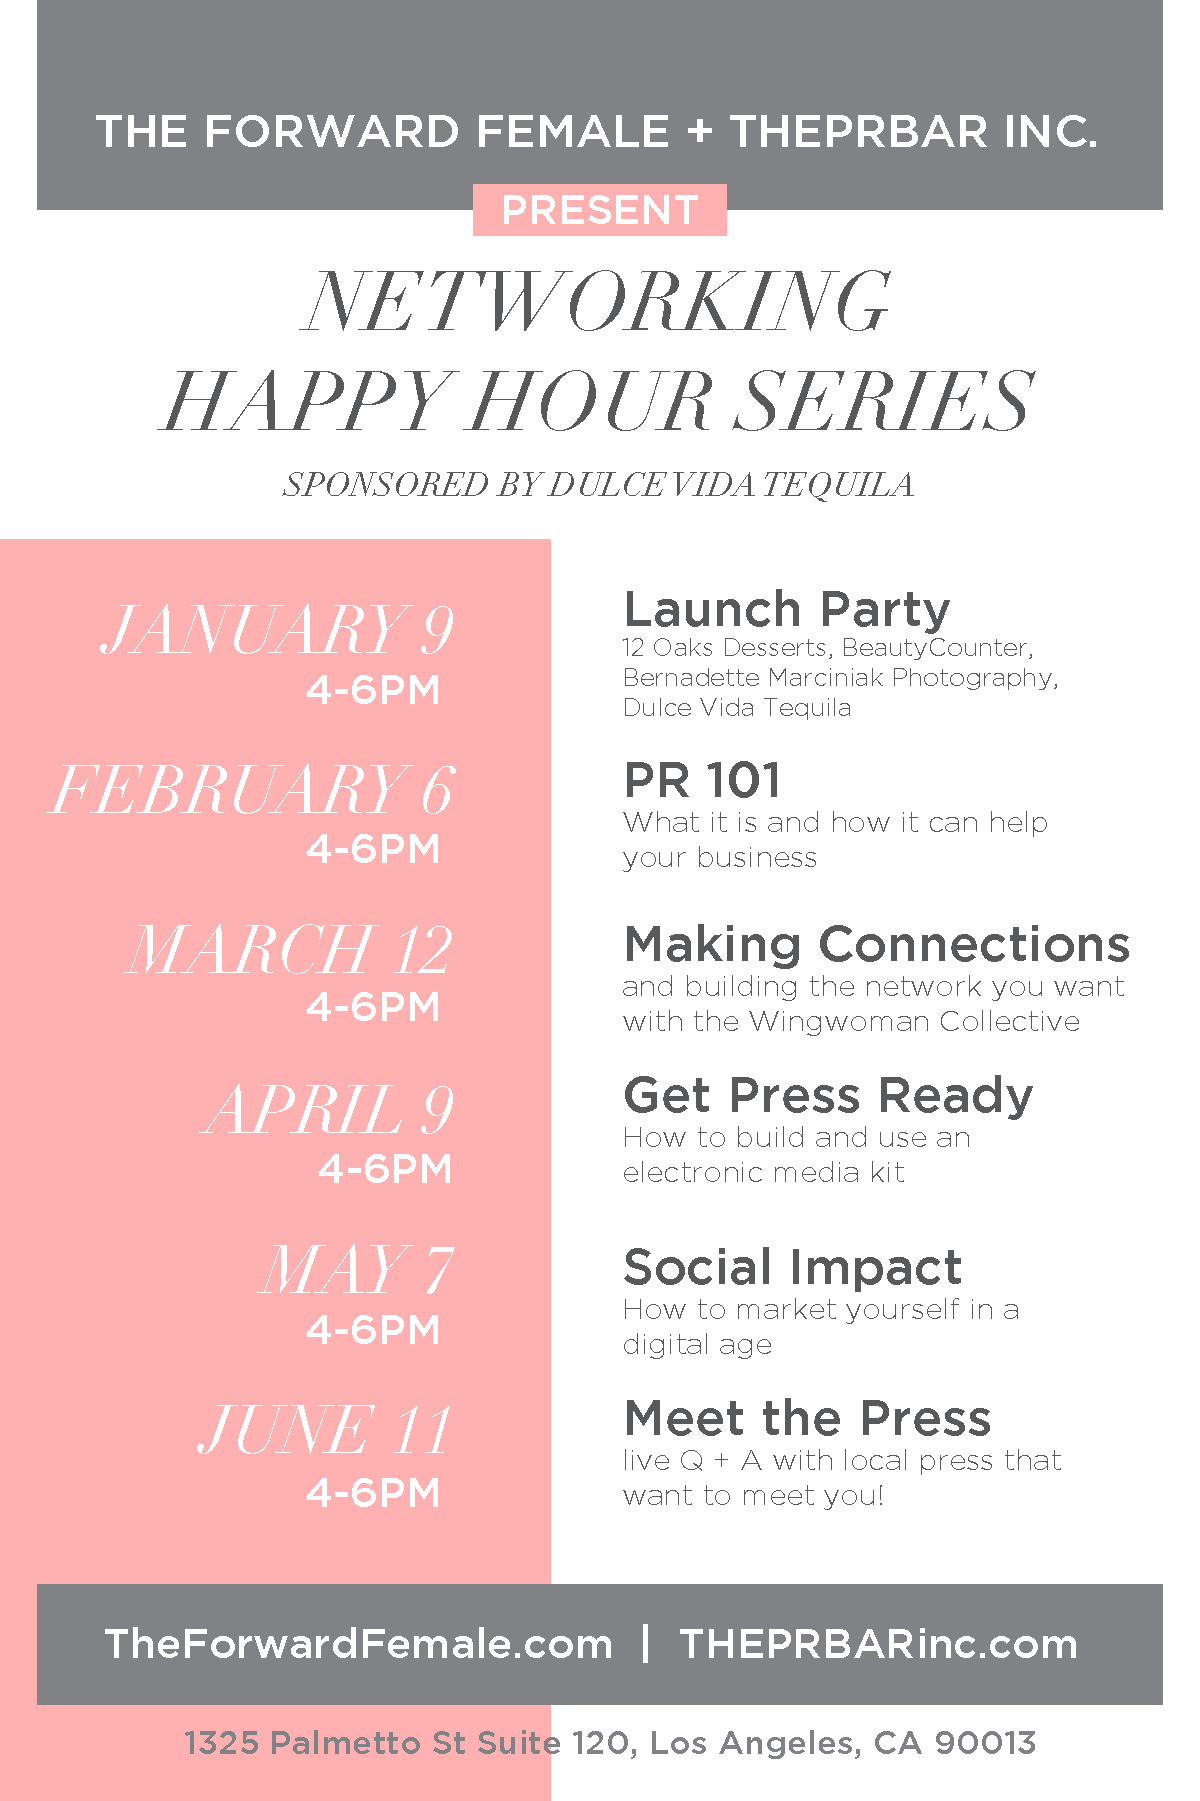 THEPRBAR_inc_upcoming events